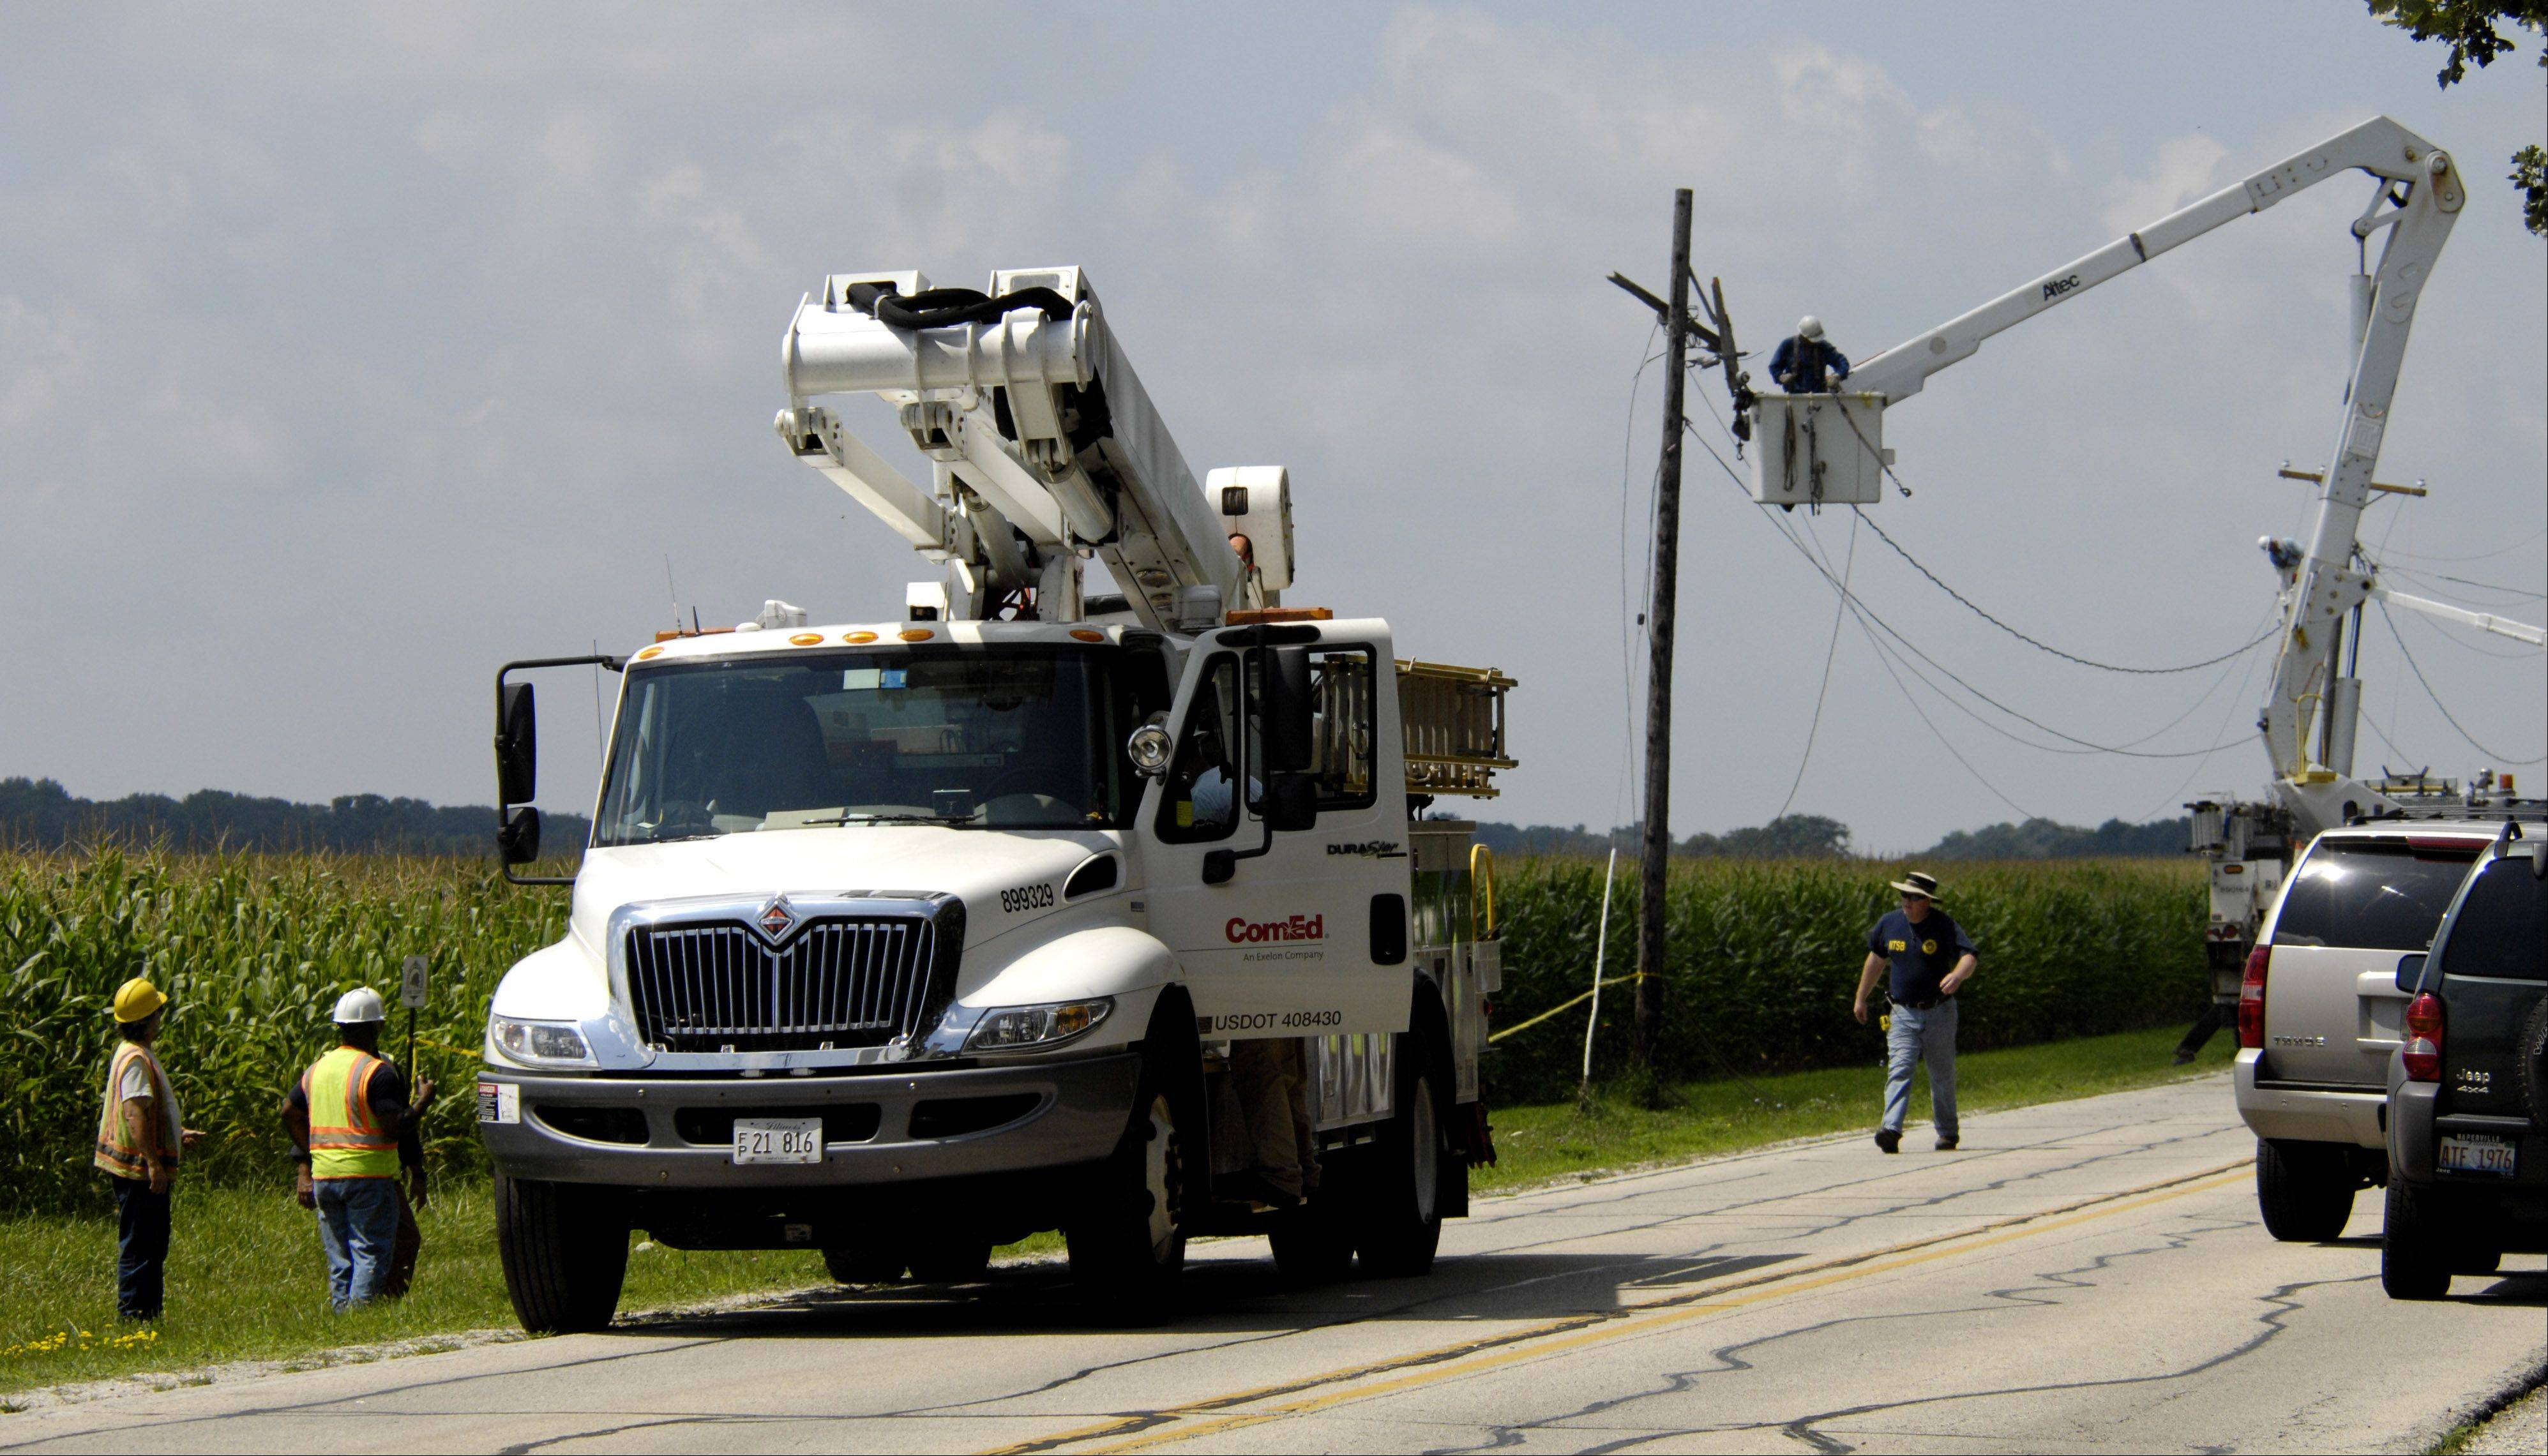 ComEd crews work to restore electricity near Sugar Grove after an experimental airplane clipped the power lines before crashing into a cornfield Sunday west of Aurora. The crash killed the plane's pilot, a 73-year-old Aurora man who'd survived two previous crashes.